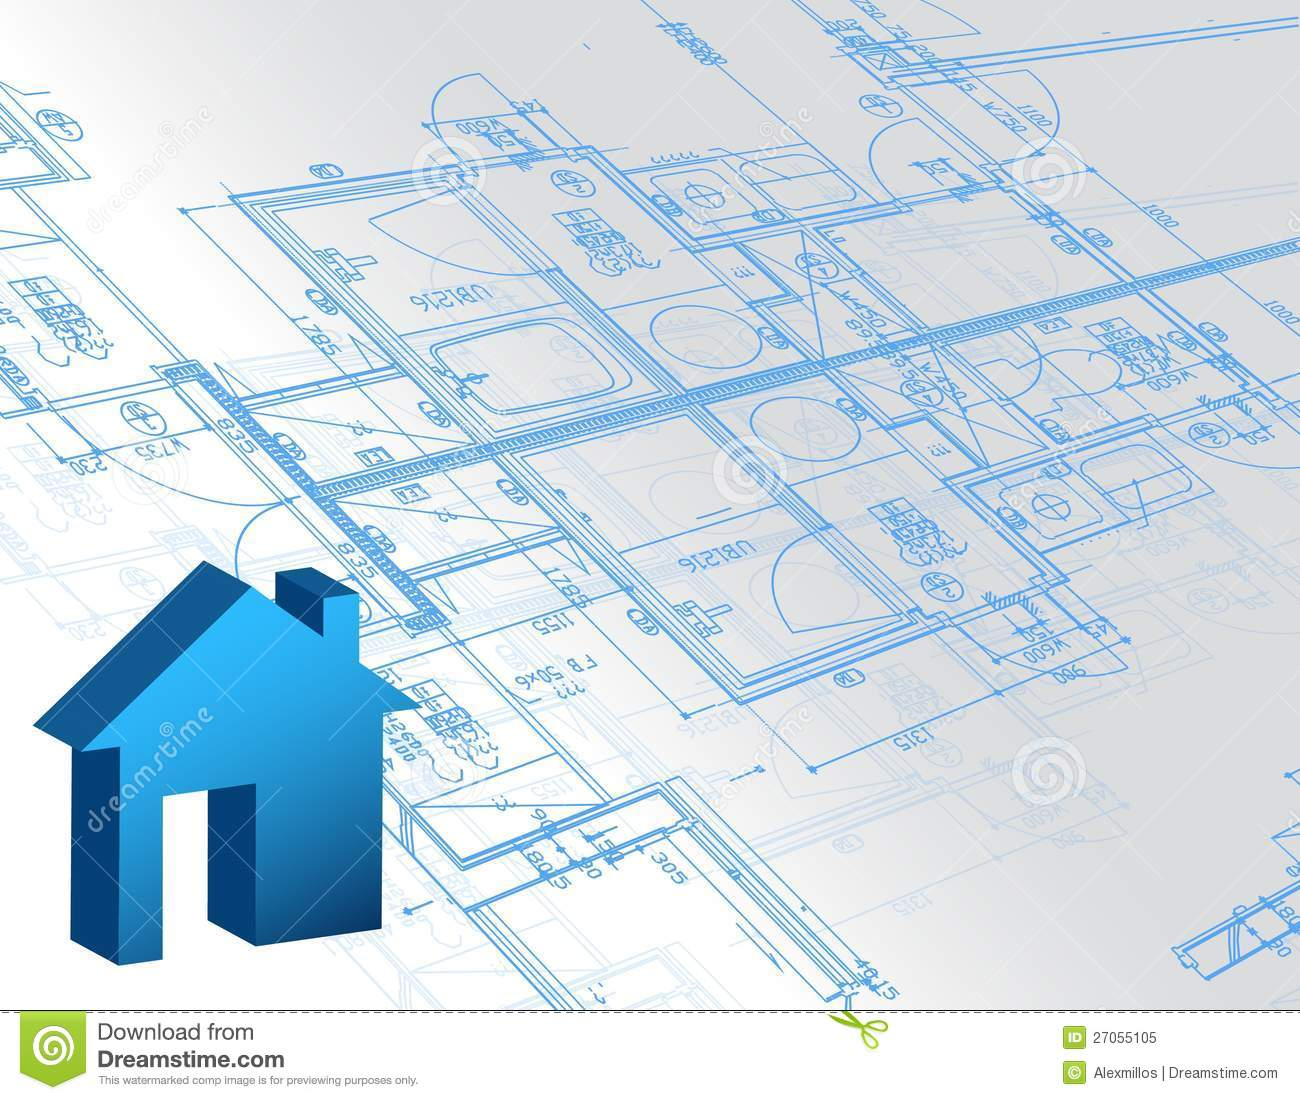 Blueprint architectural map and 3d house model royalty for House blueprint images